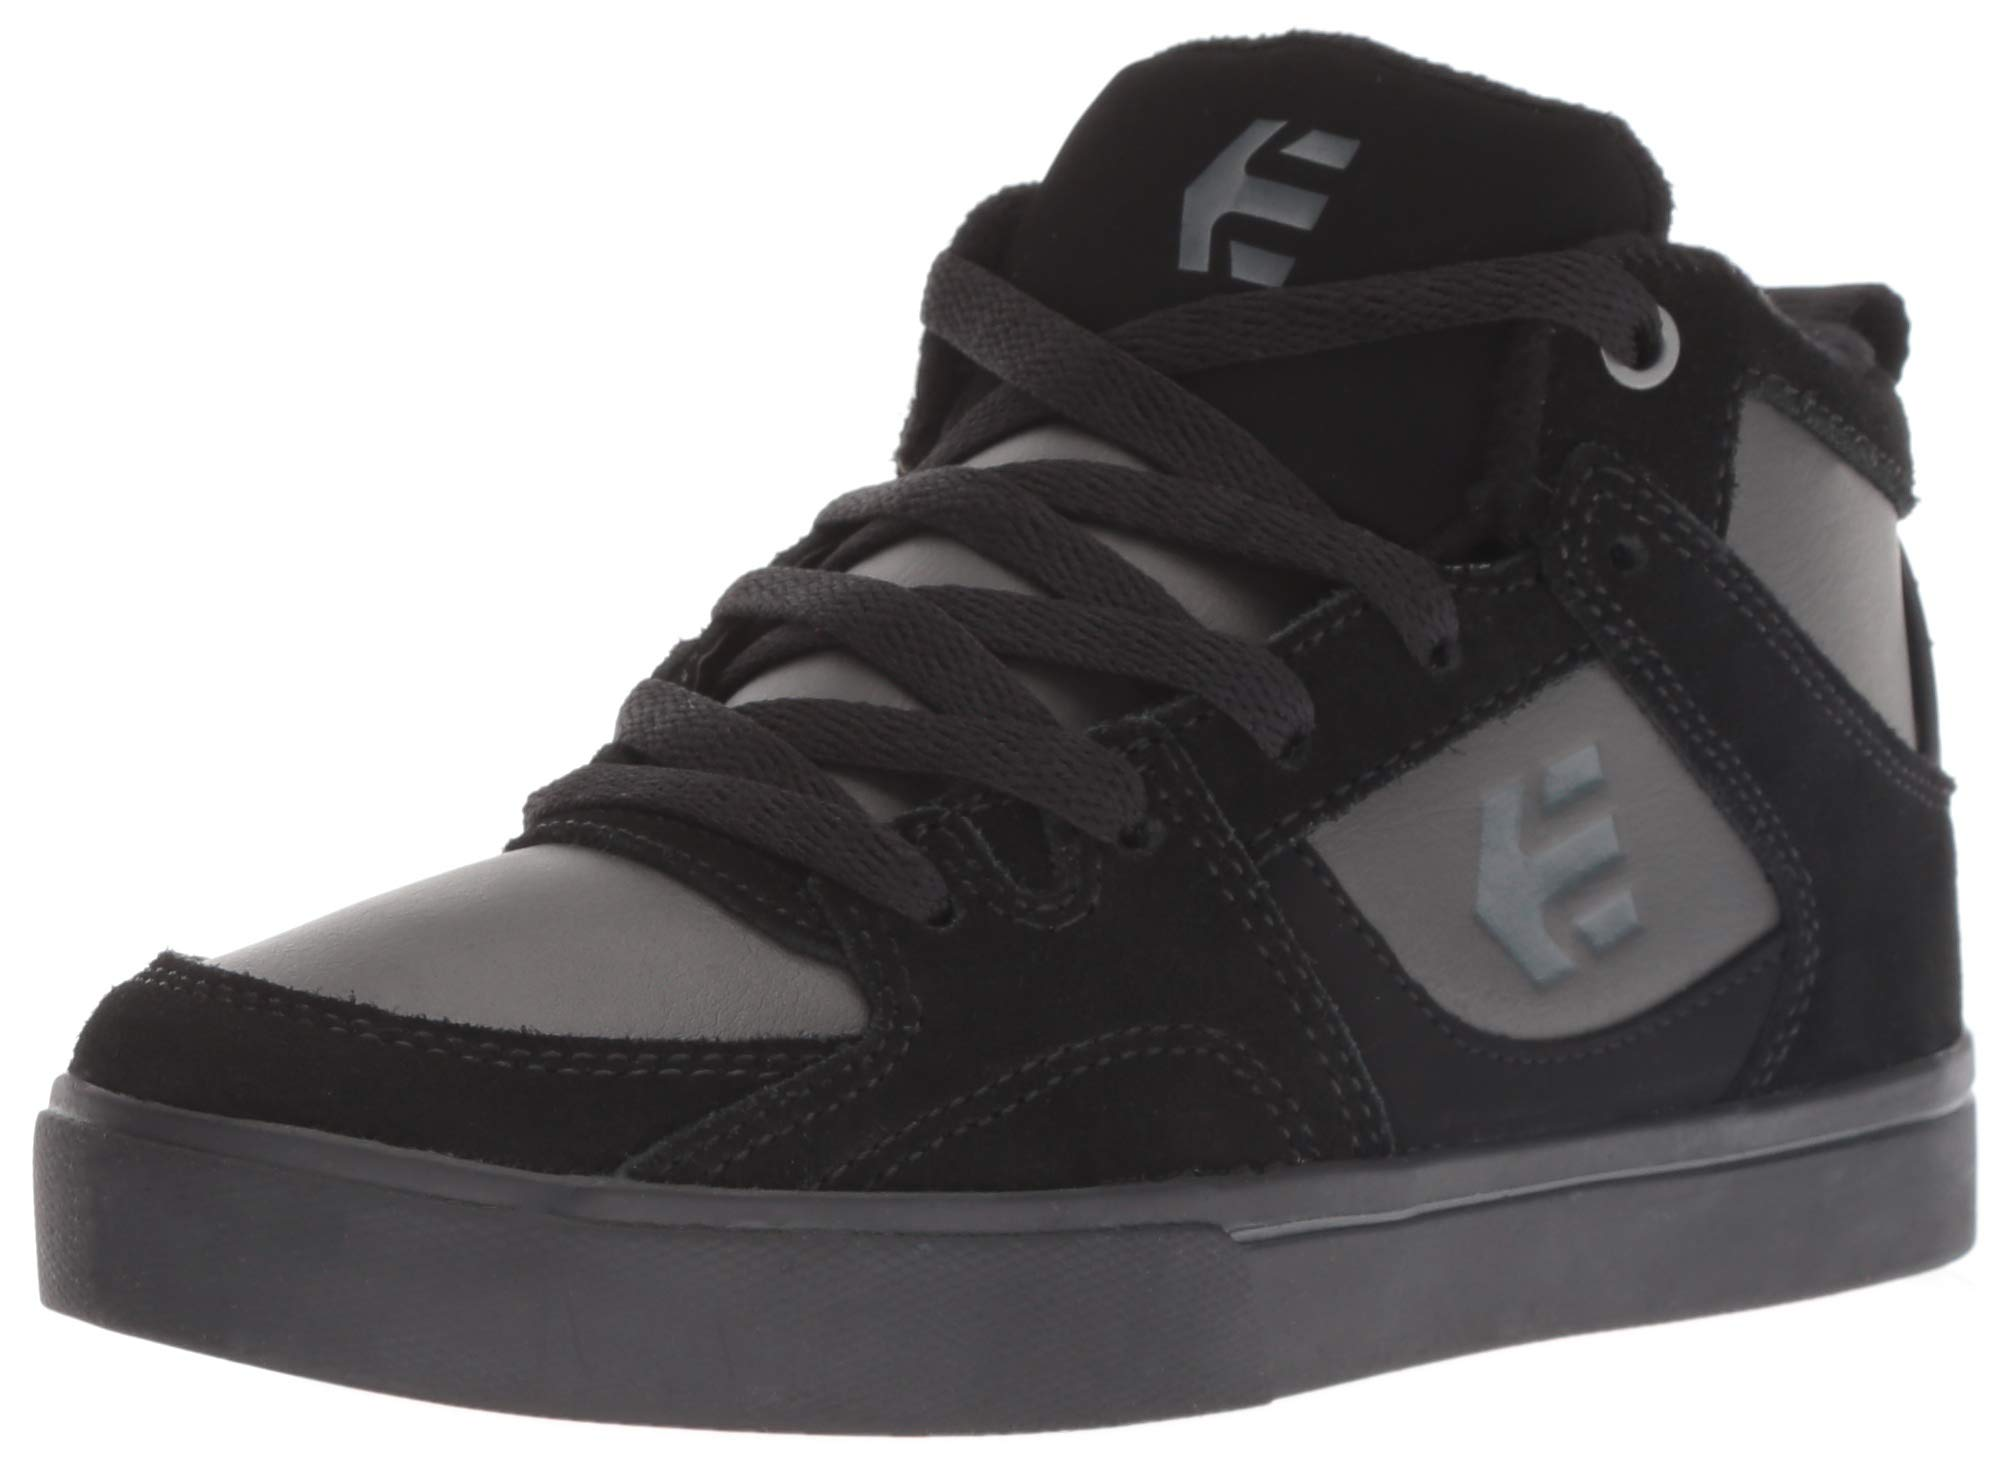 Etnies Unisex Harrison HT Skate Shoe, Black, 13c Medium US Big Kid